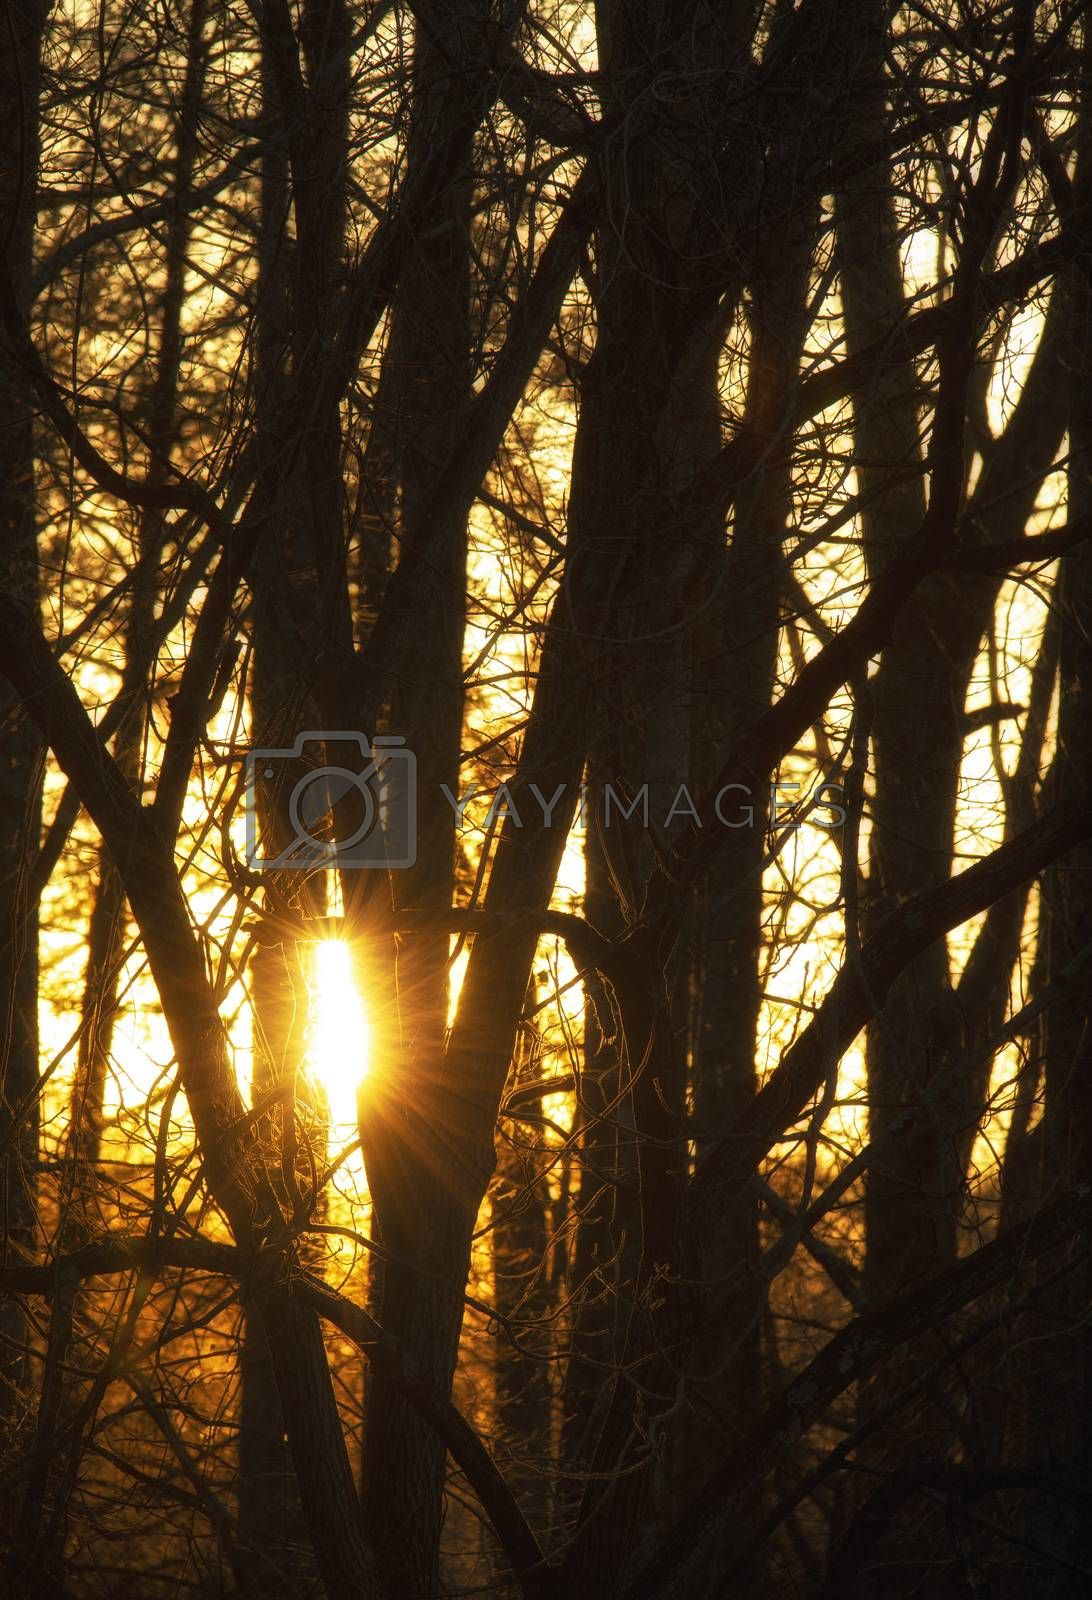 Sunset Through the Trees by Charlie Floyd